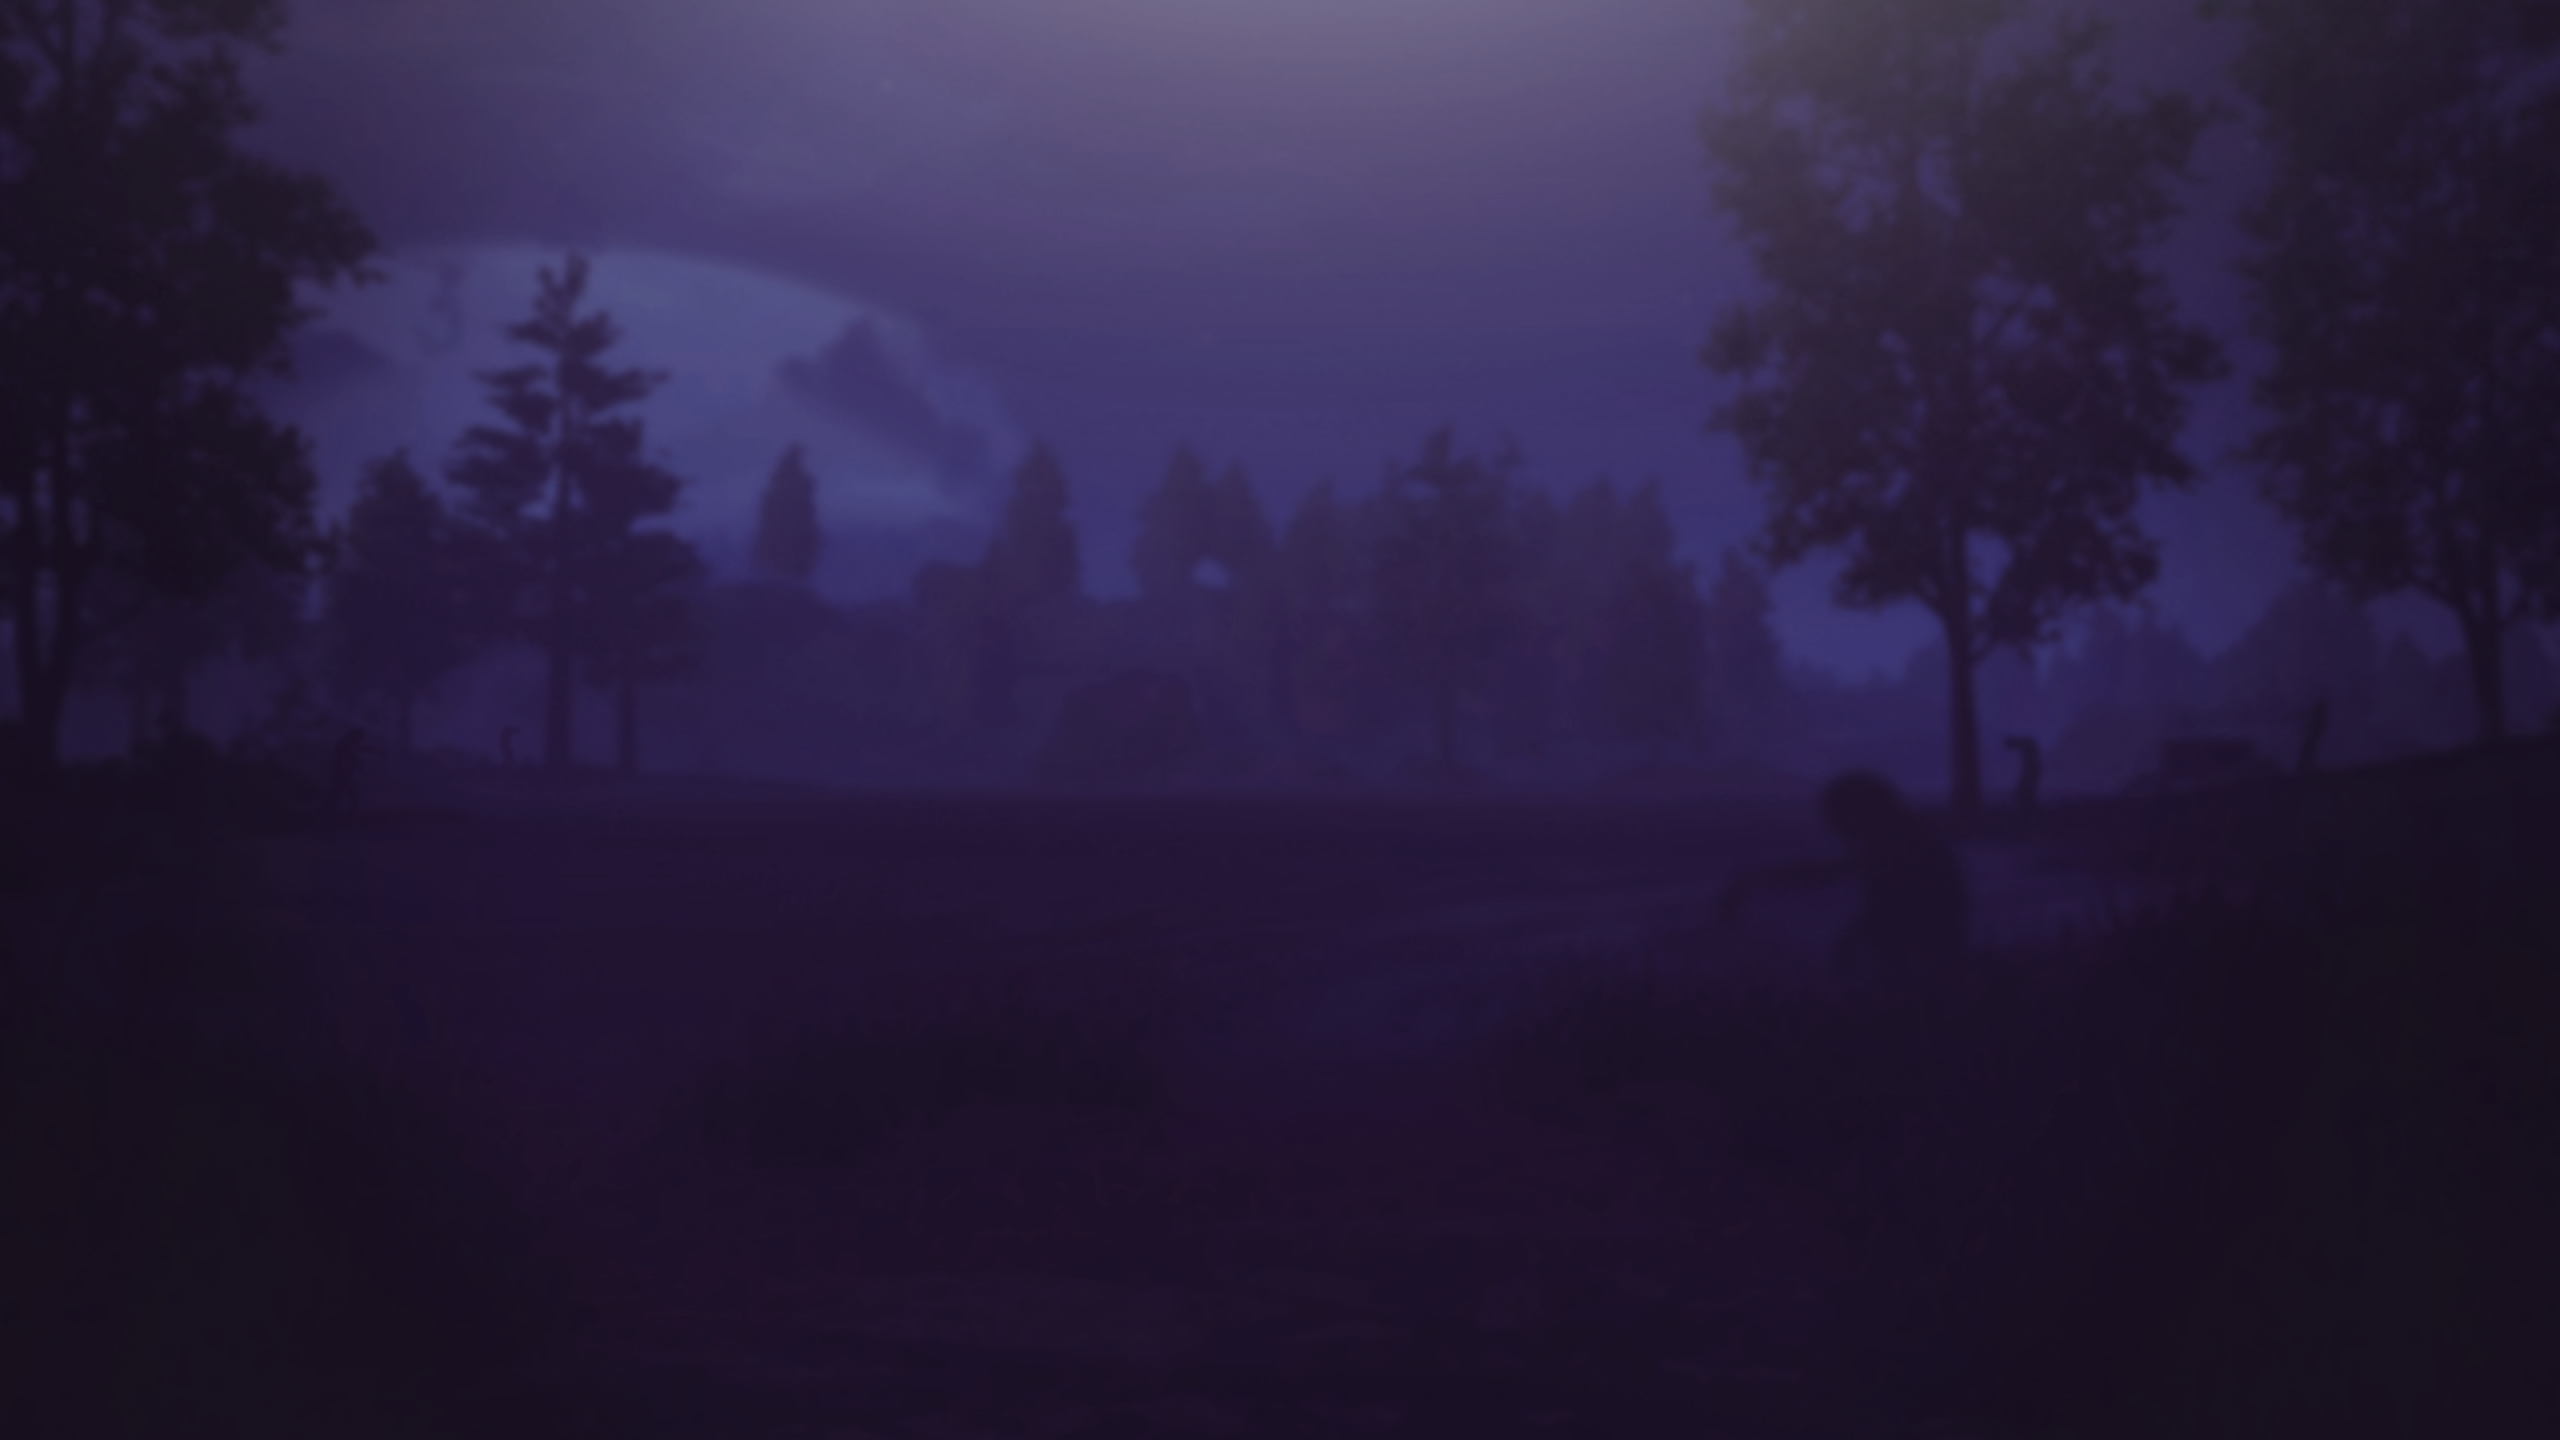 h1z1 night wallpaper background 64163